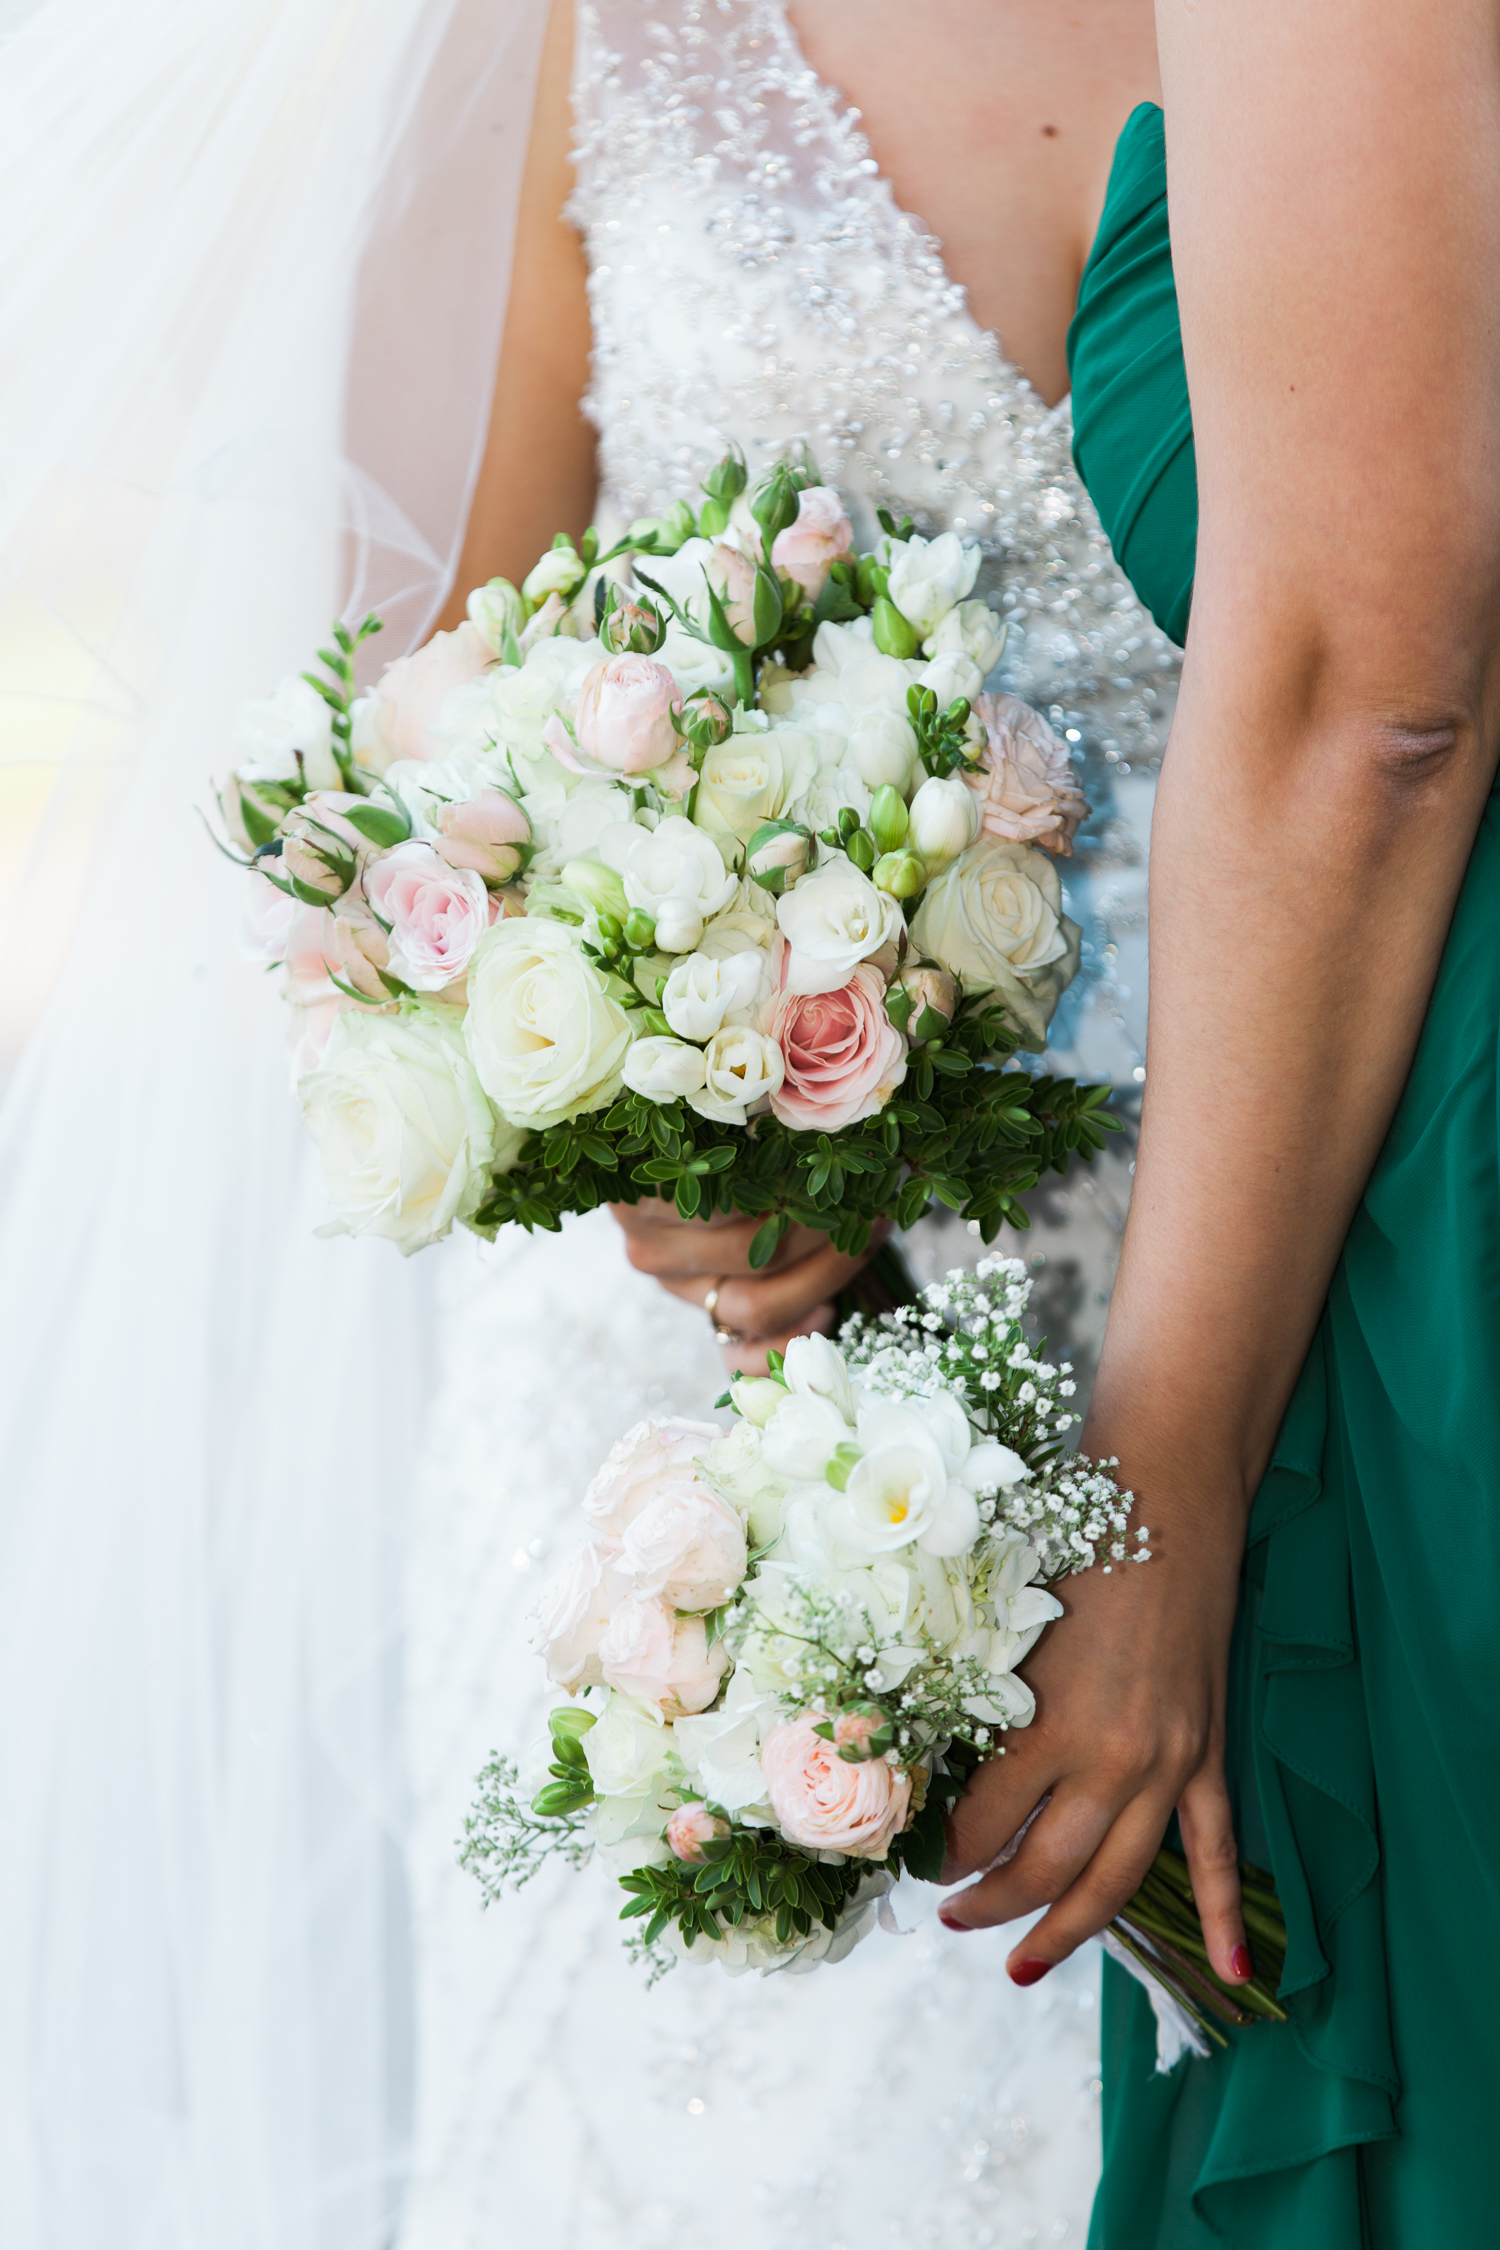 Bride and bridesmaids bouquets at Iscoyd Park wedding photo